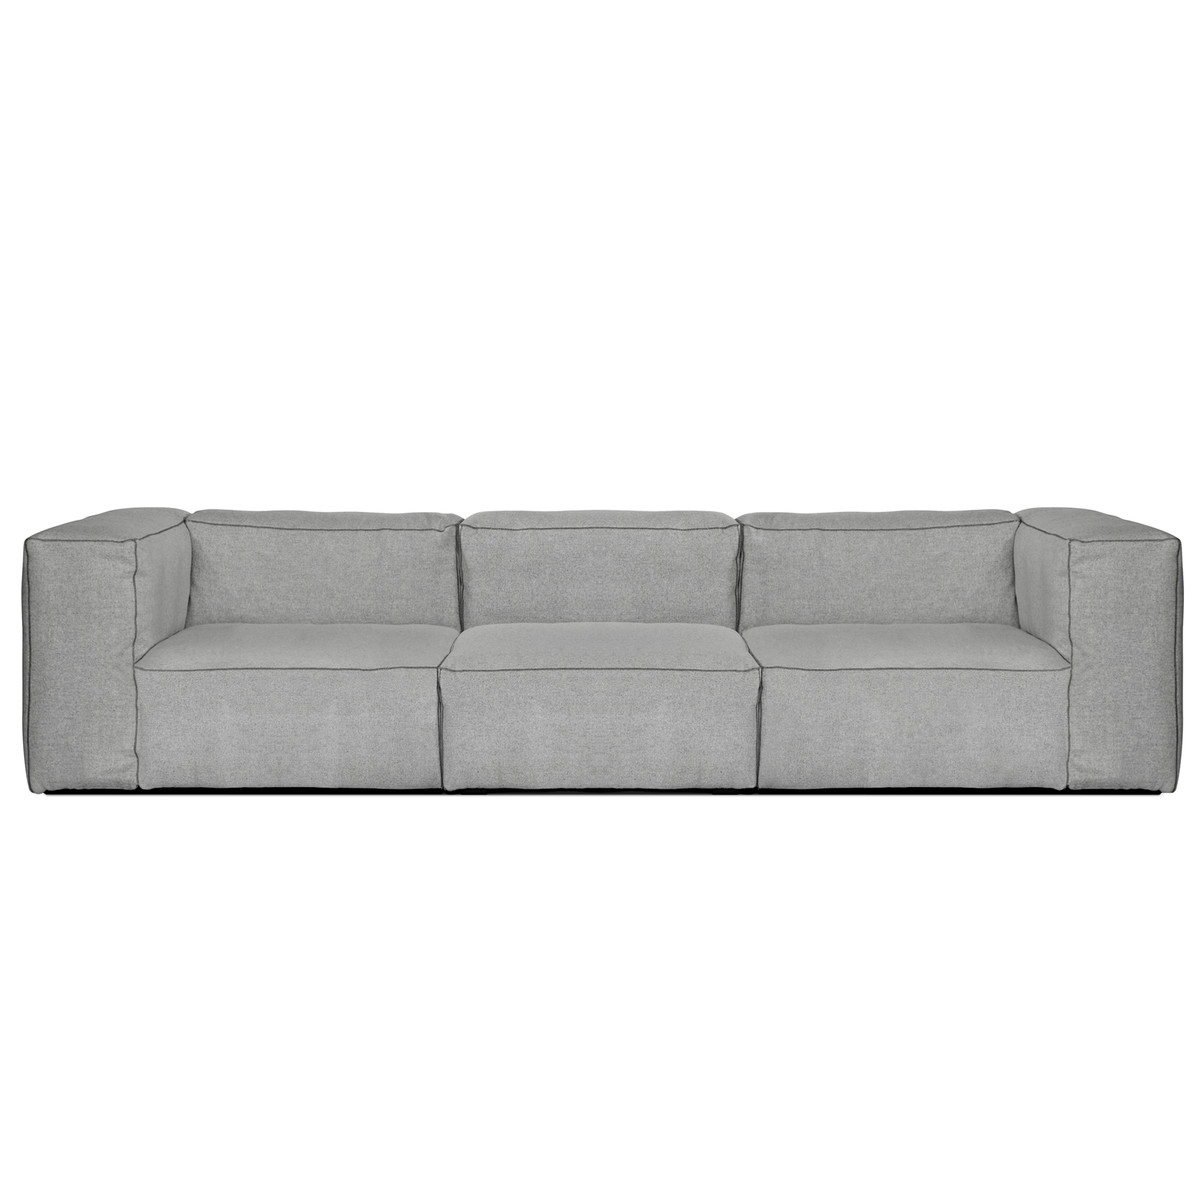 Best And Newest Soft Sofas With Regard To Mags Soft 3 Seater Sofa (View 3 of 20)